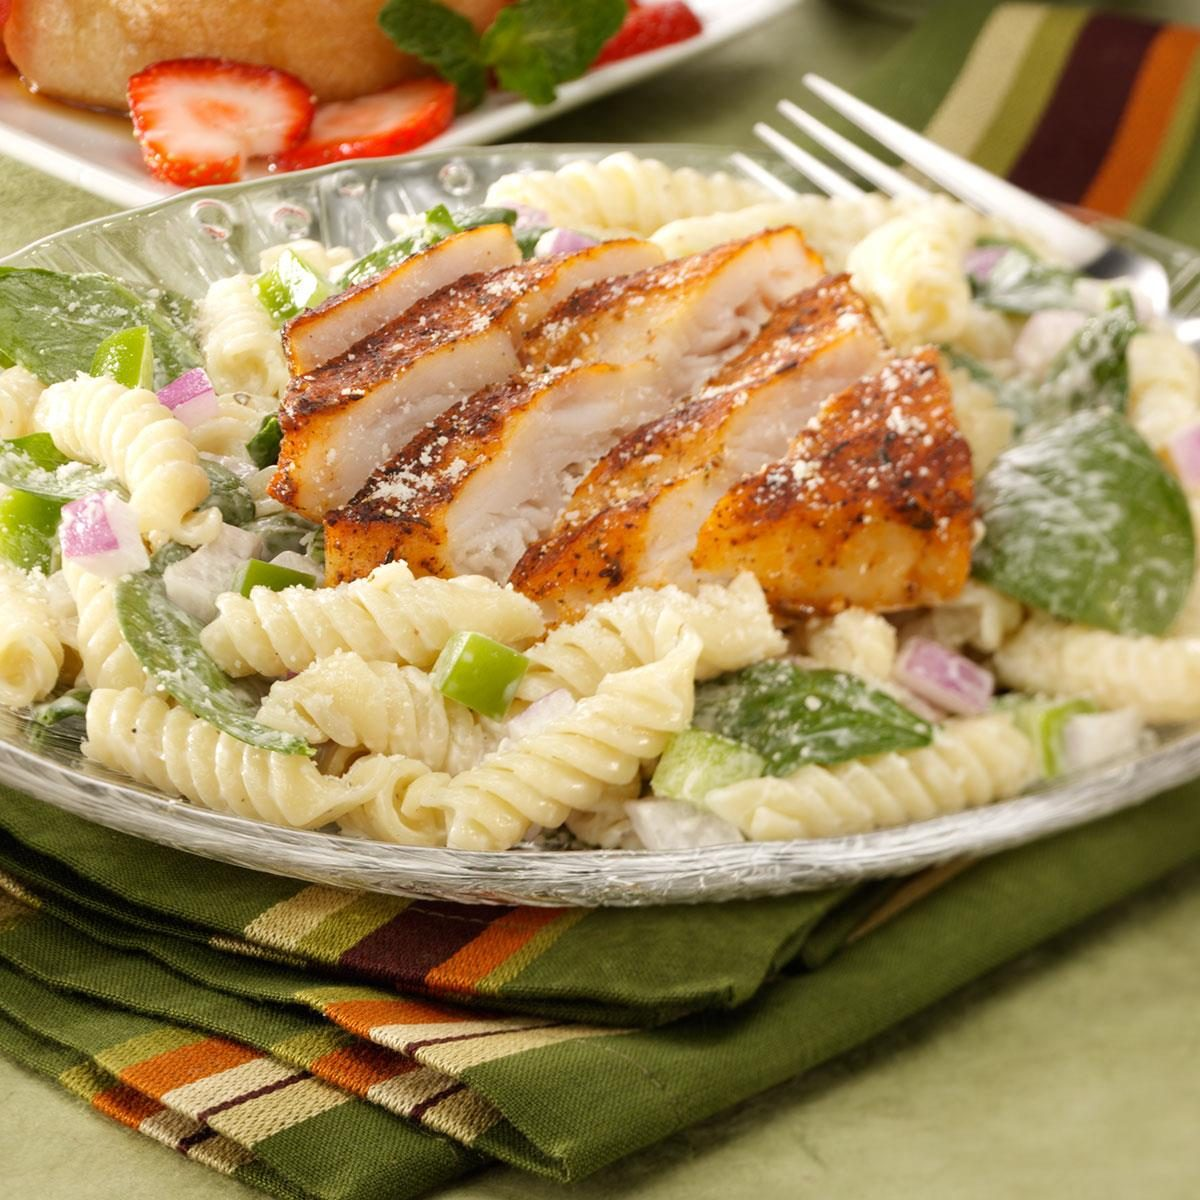 Blackened fish salad recipe taste of home for Fish and salad